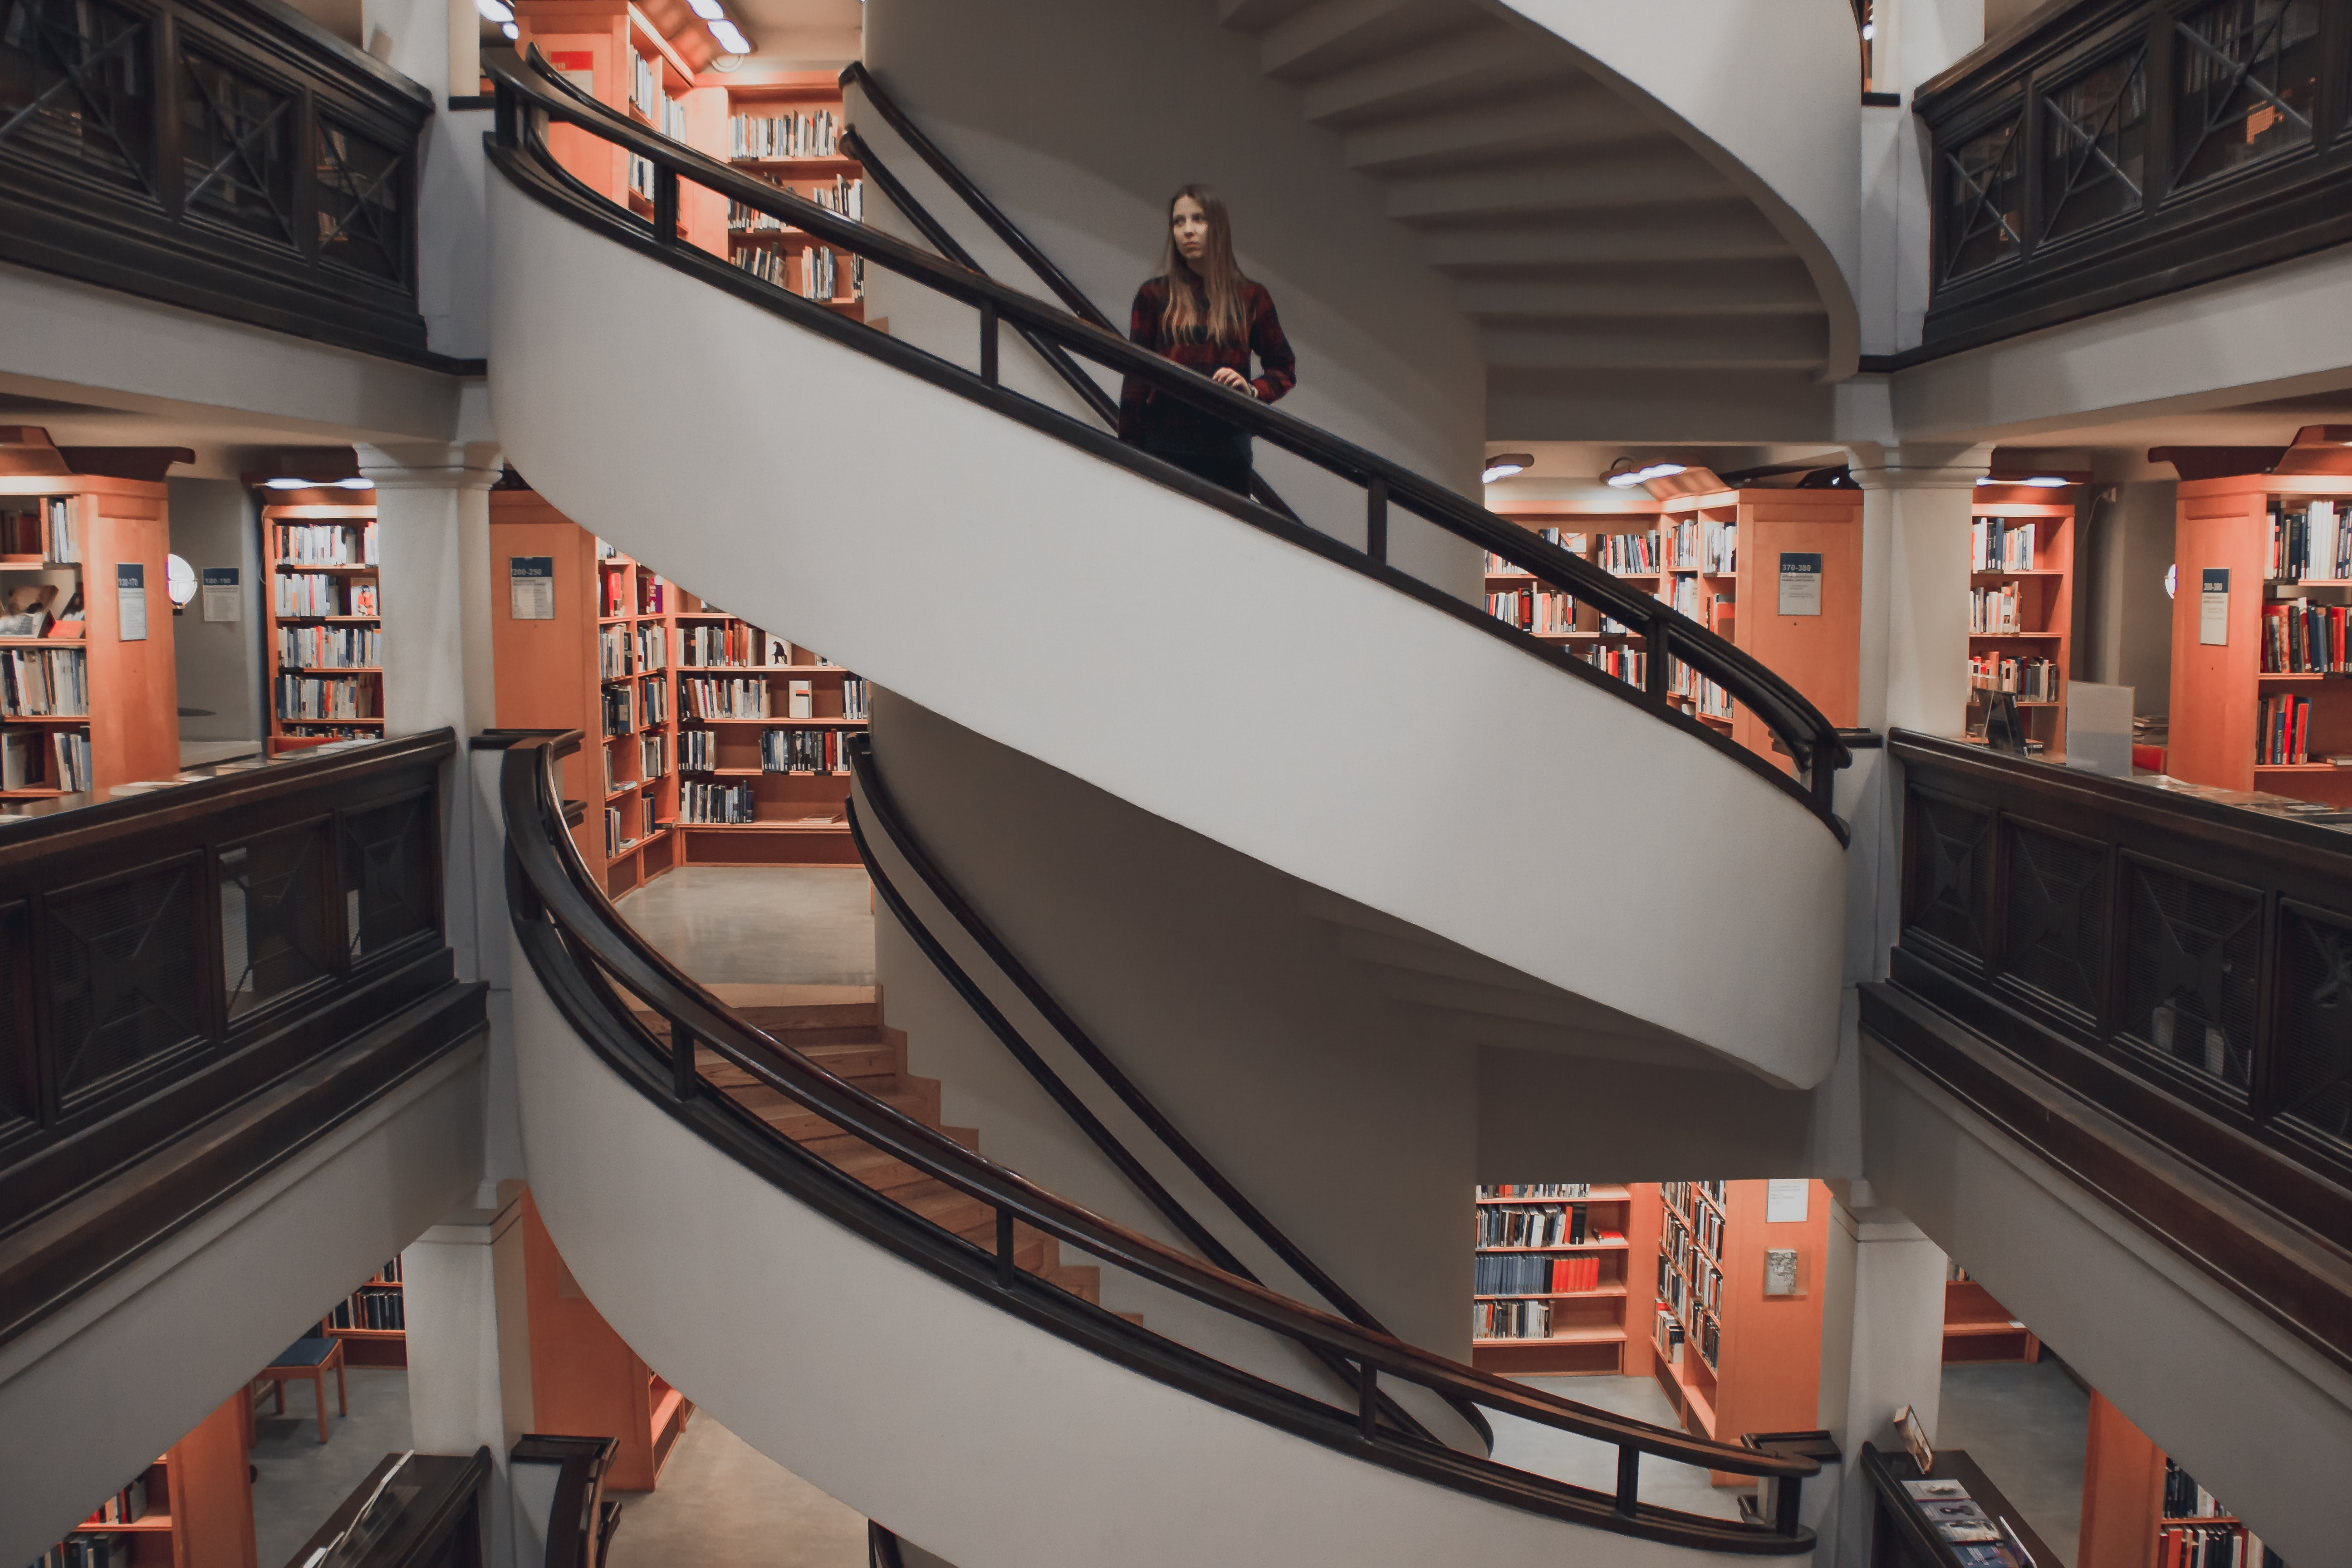 woman standing on spiral stairway